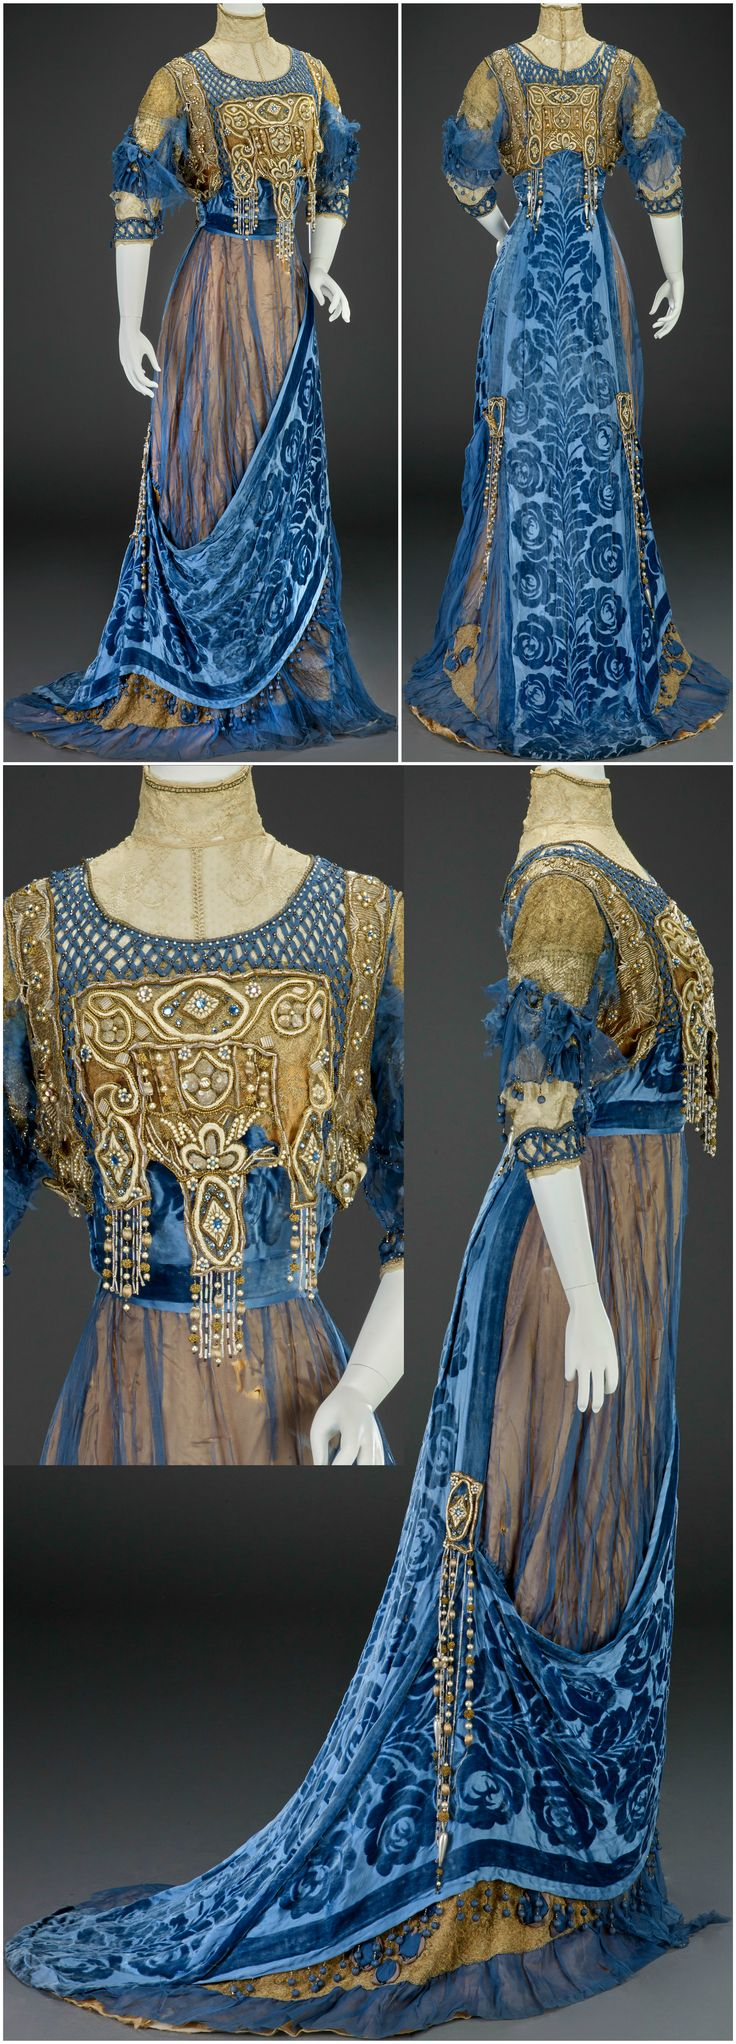 Evening dress, by G. Giuseffi Ladies' Tailoring Company, American, about 191…